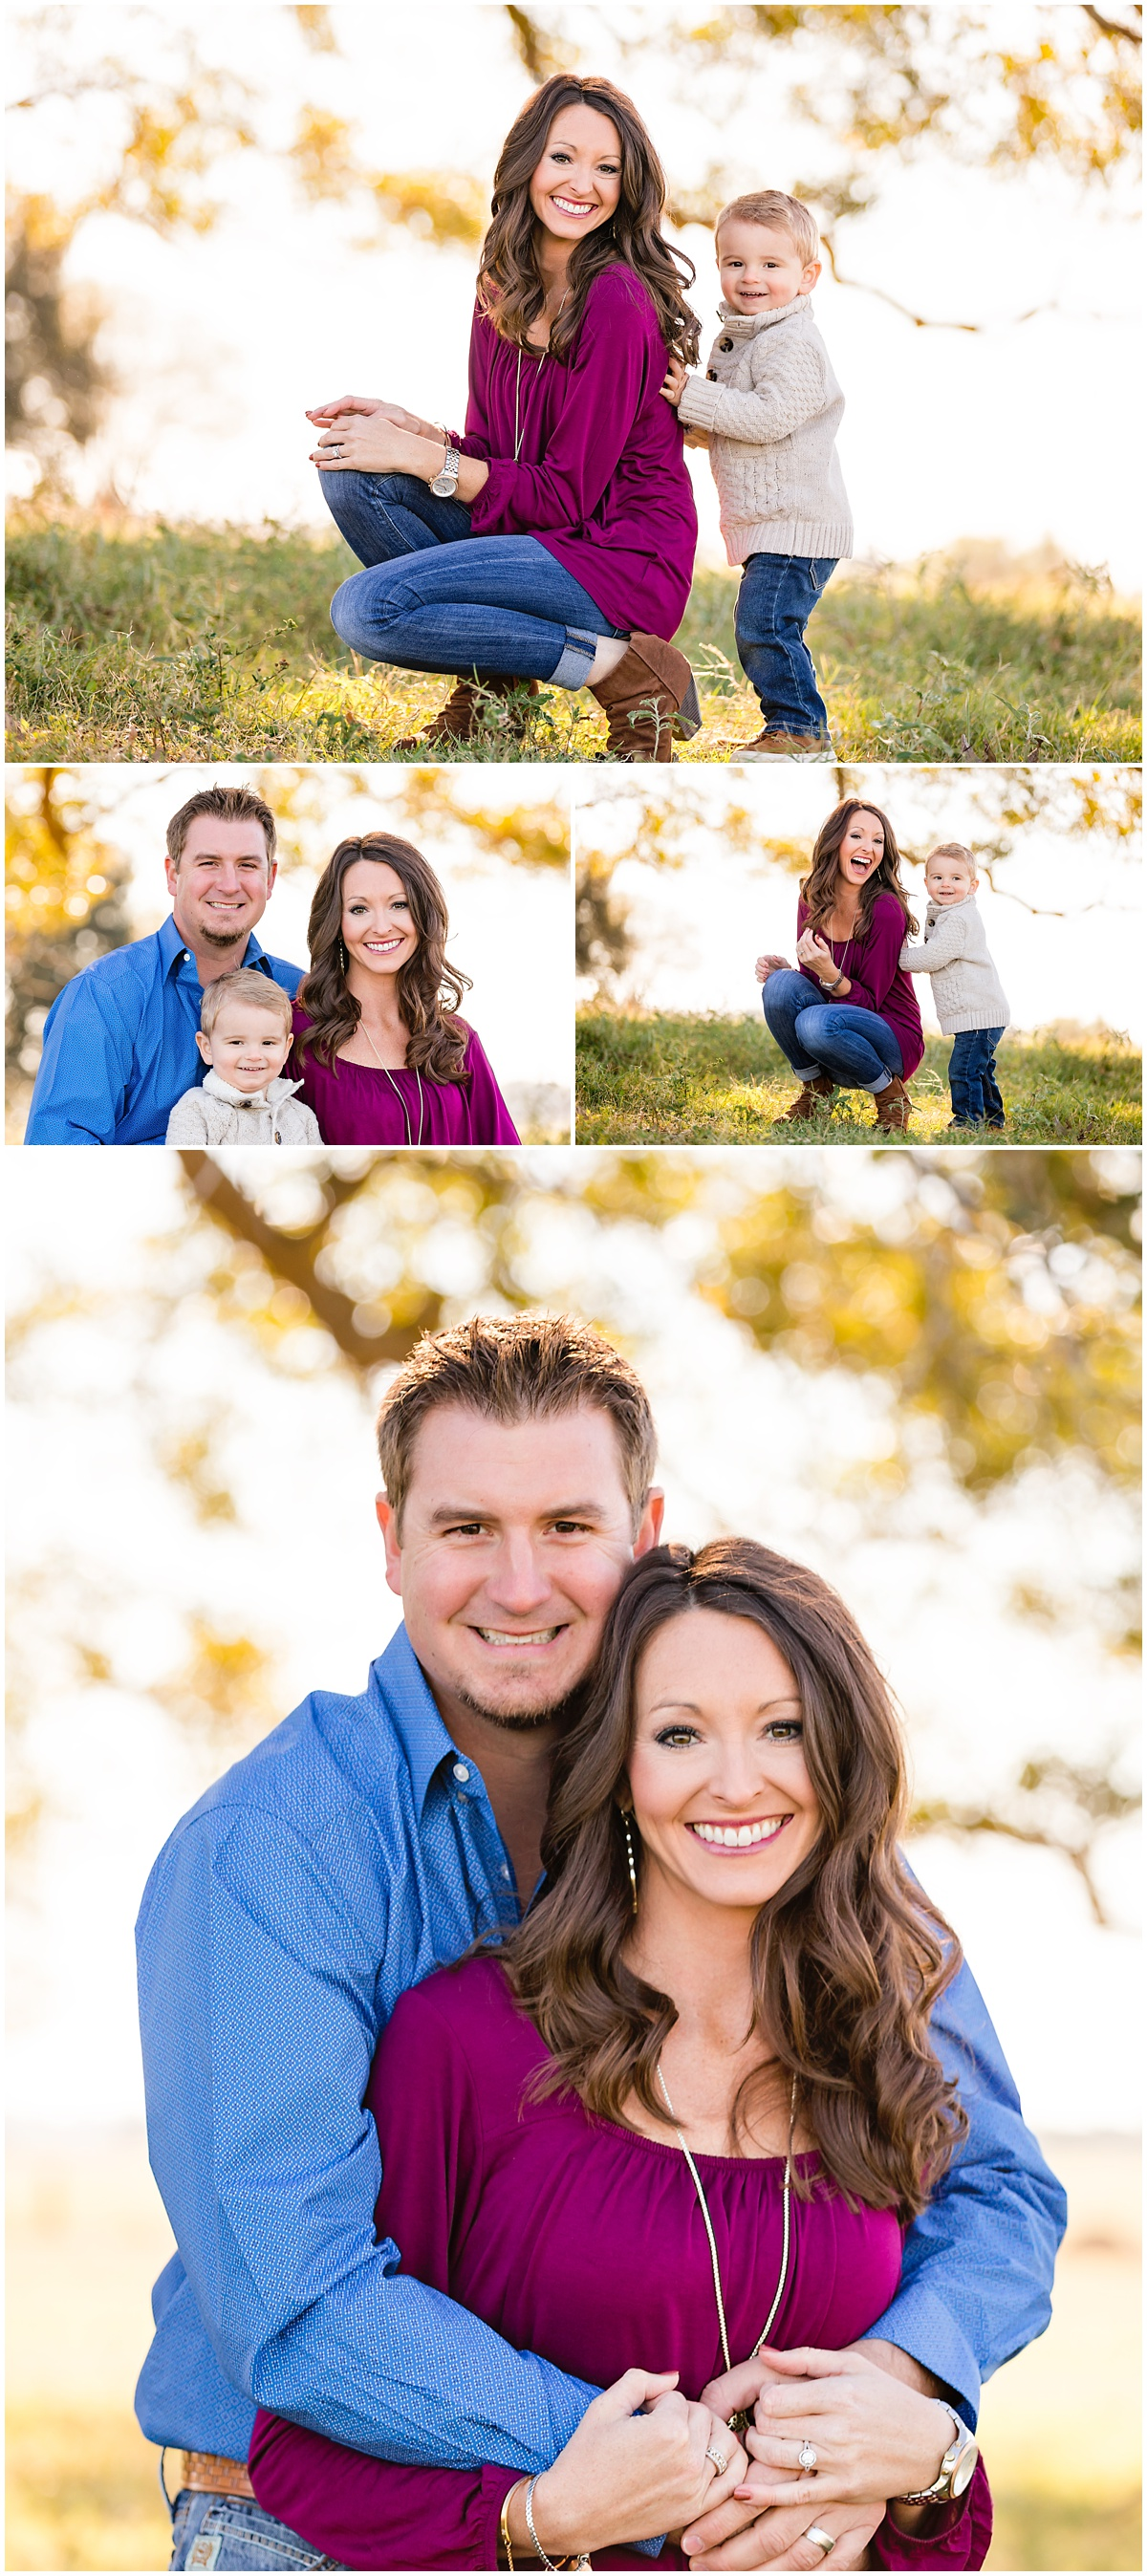 Family-Children-Maternity-Portraits-San-Antonio-Hill-Country-Texas-Carly-Barton-Photography_0064.jpg